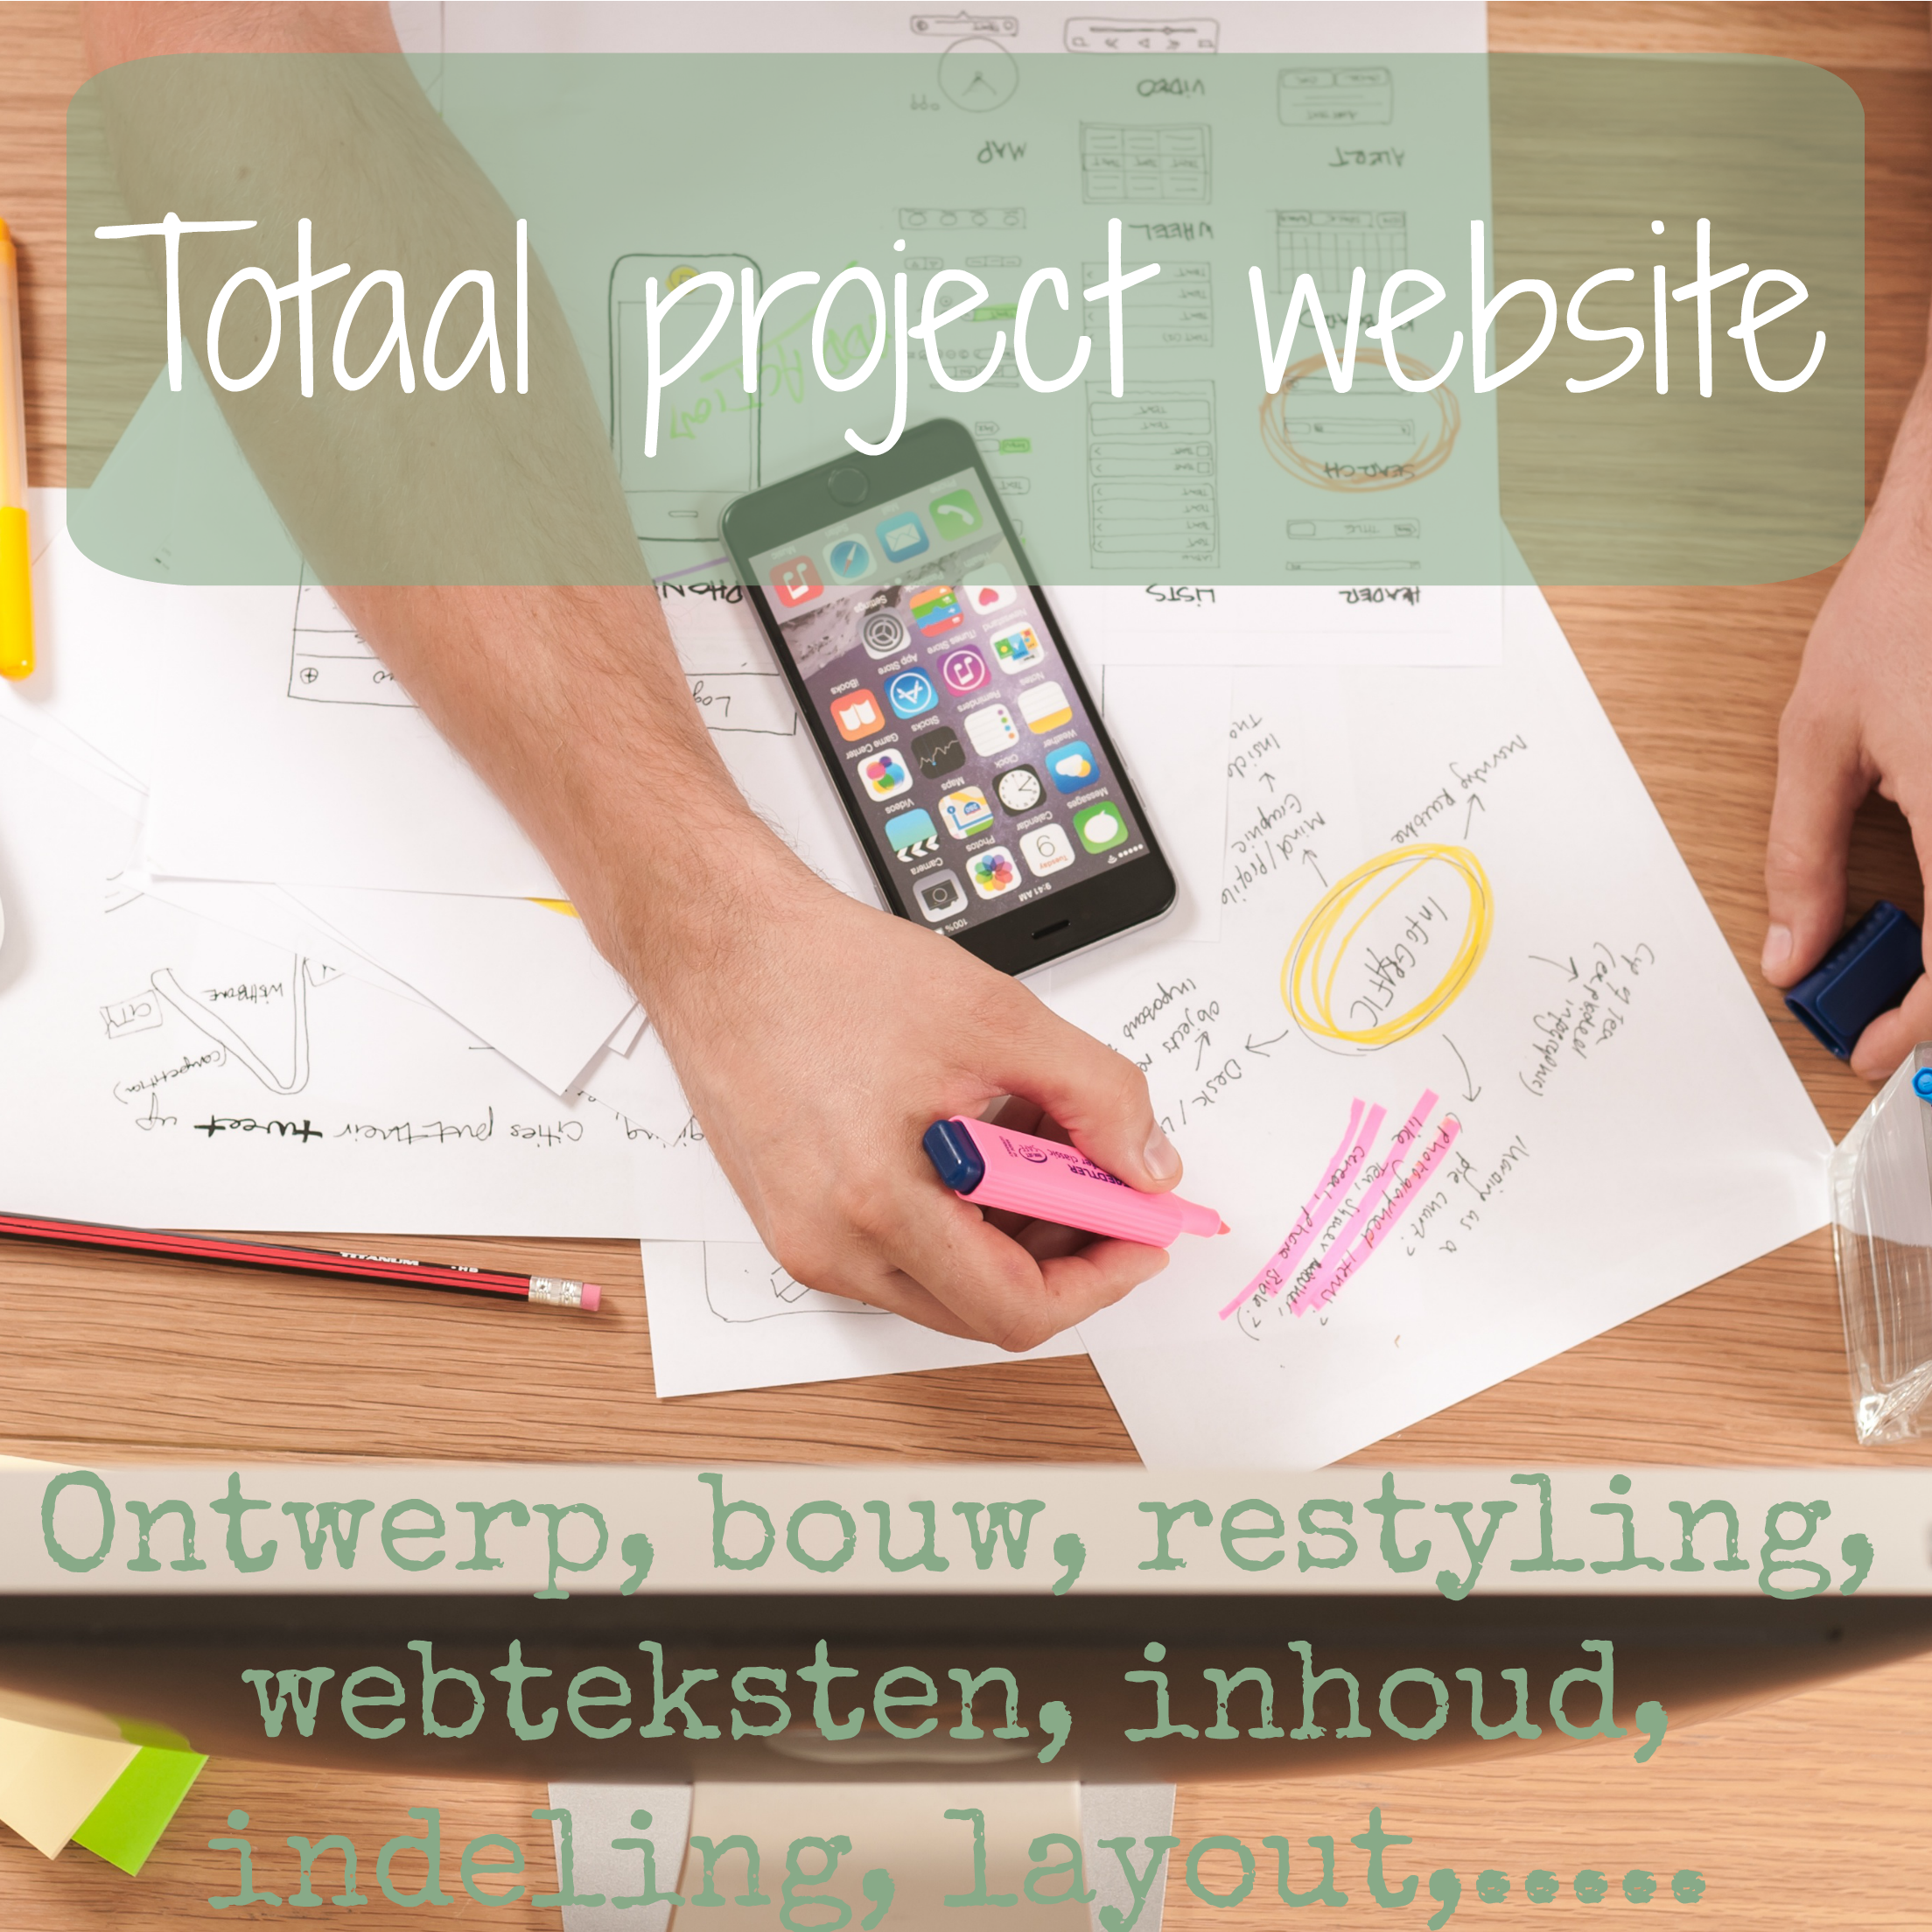 totaal project website